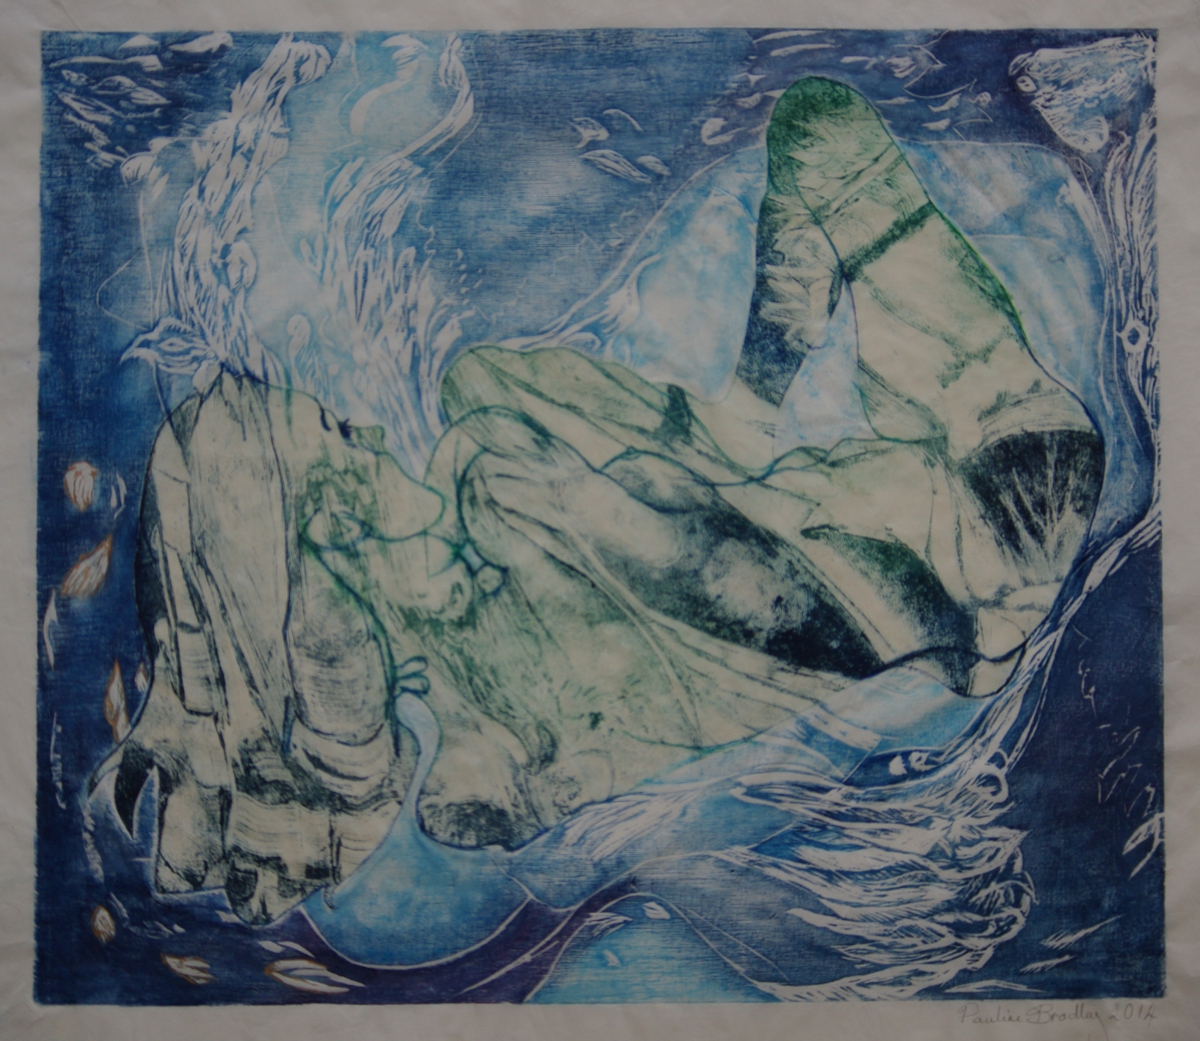 Reclining Nude - Submerged